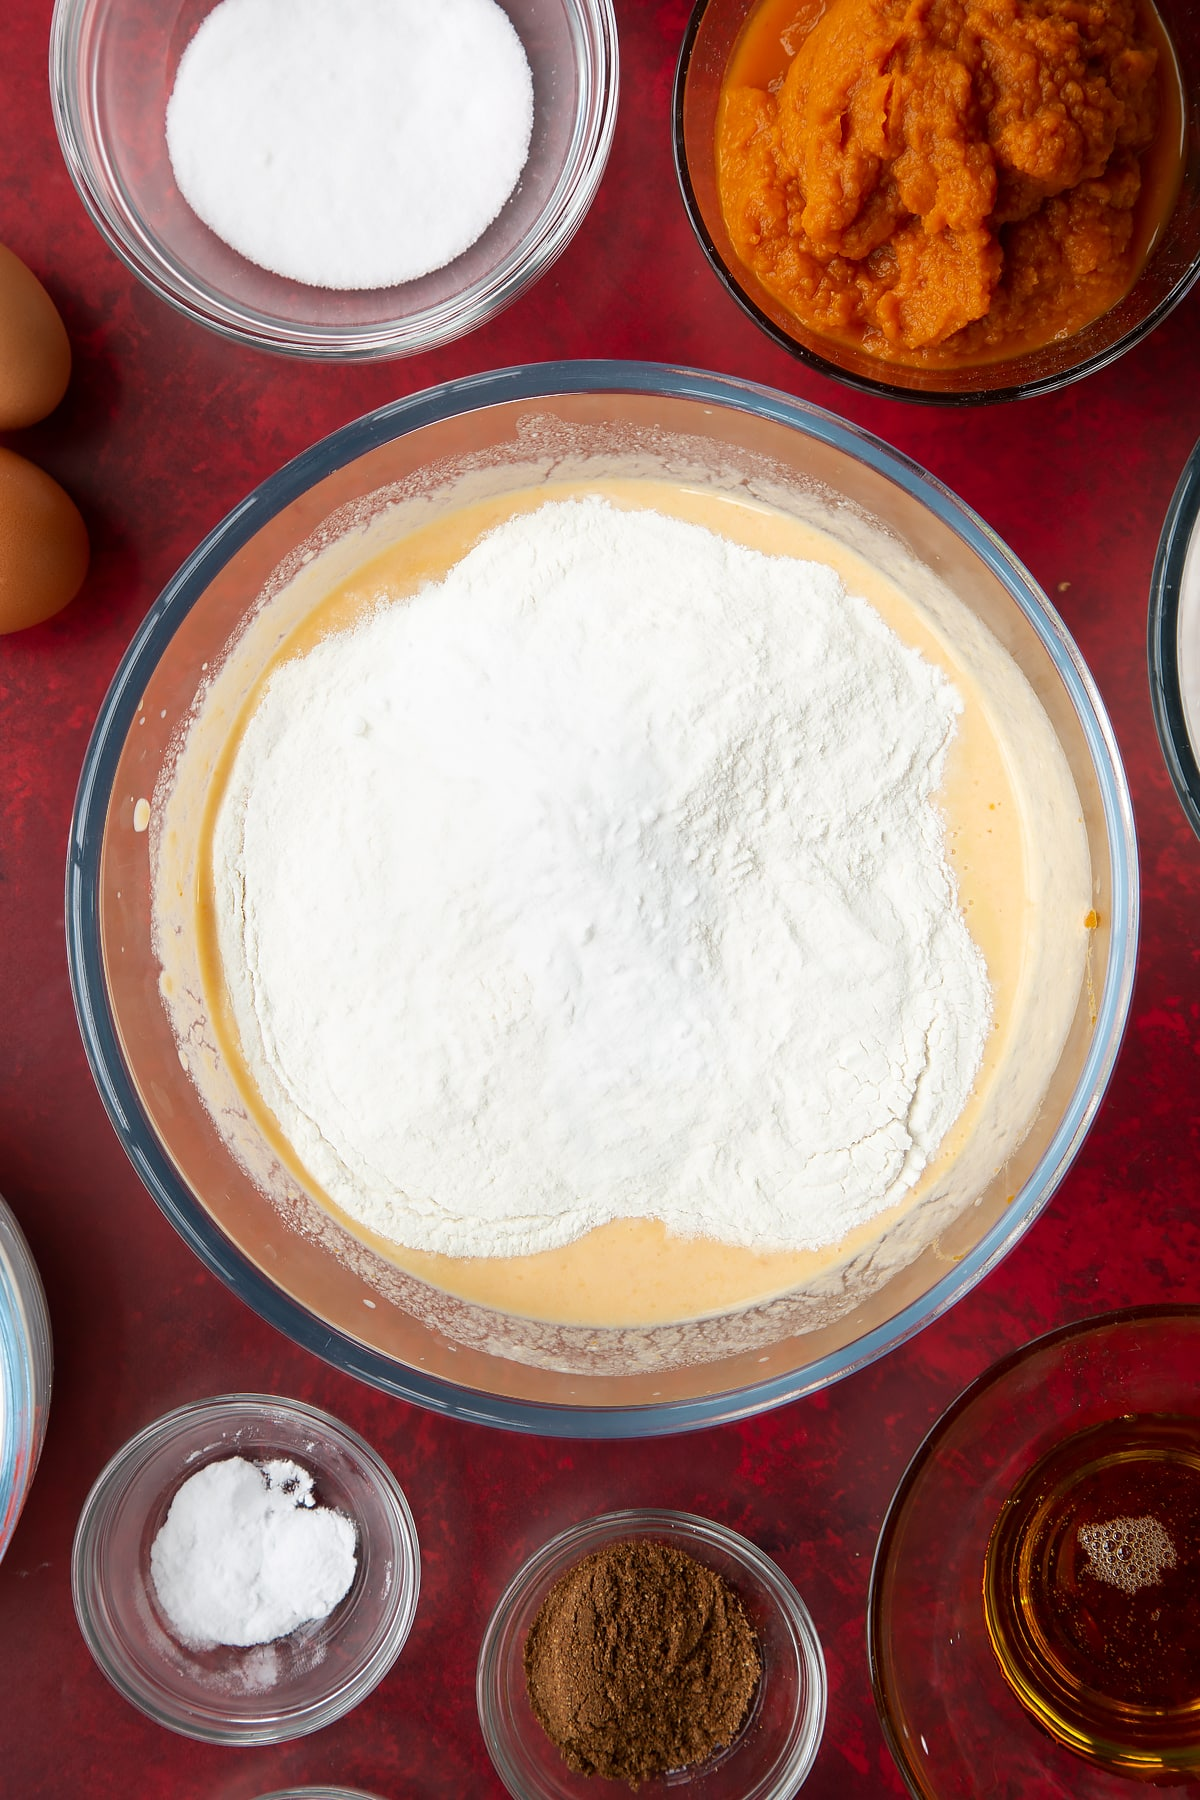 Whisked yogurt, egg, milk and pumpkin puree with flour, sugar, baking powder, bicarbonate of soda and mixed spice in a glass mixing bowl. Ingredients to make Halloween pancakes surround the bowl.